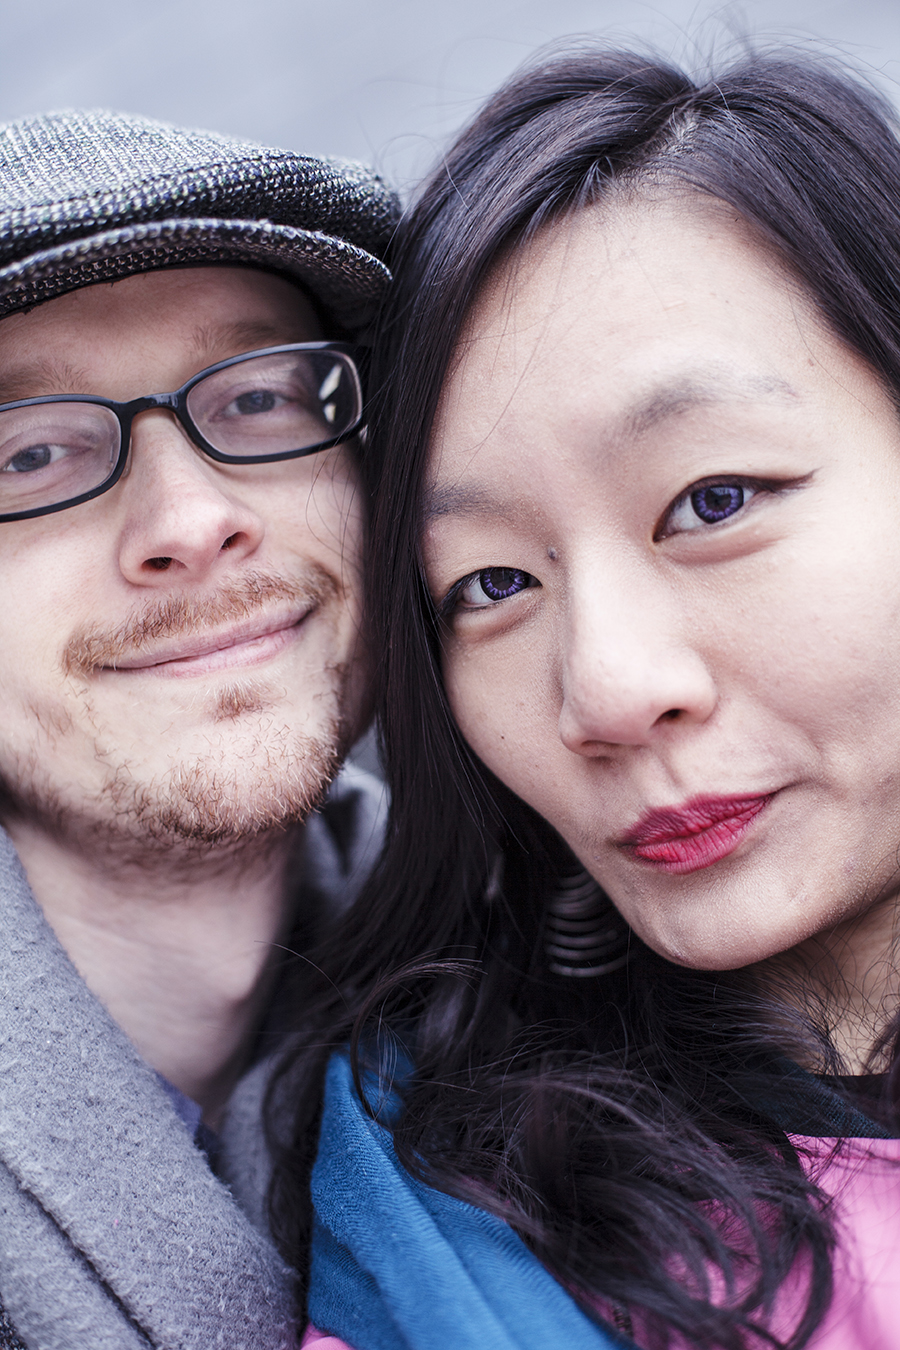 Ottie and Ren Selfie at Dongdaemun Design Plaza, Seoul, South Korea.